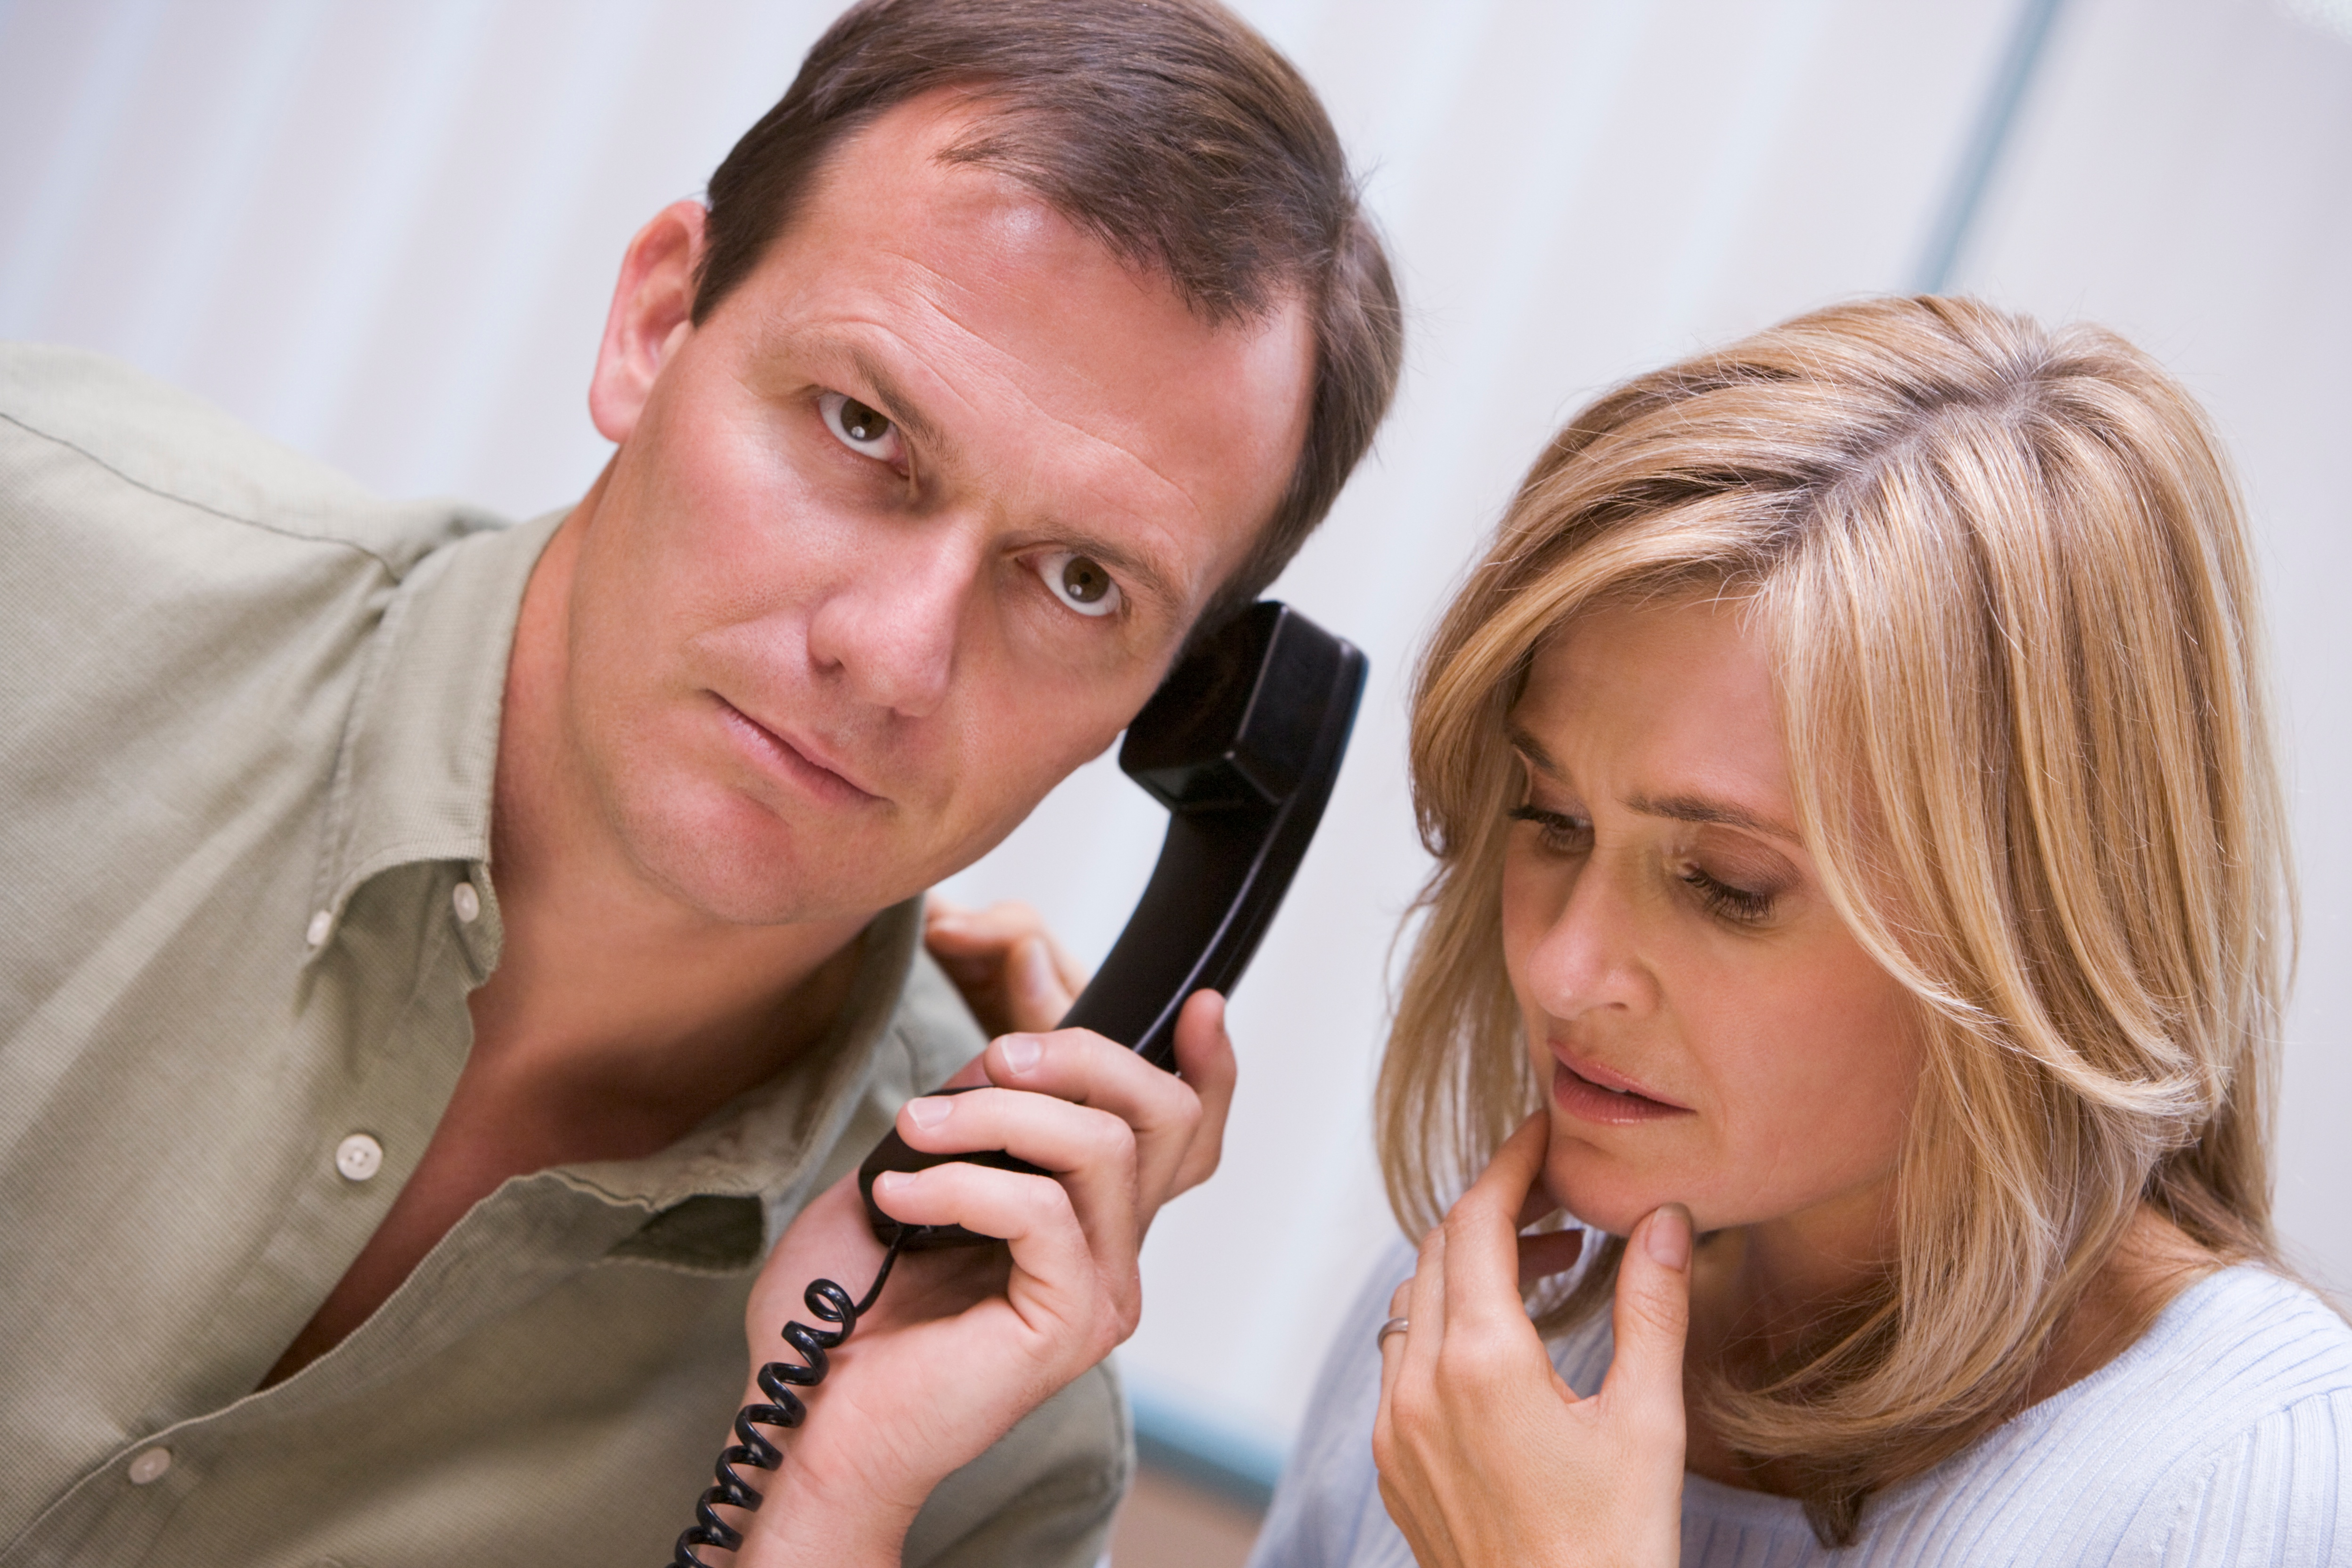 couple-receiving-bad-news-over-the-phone-at-home_BFItInRBi.jpg